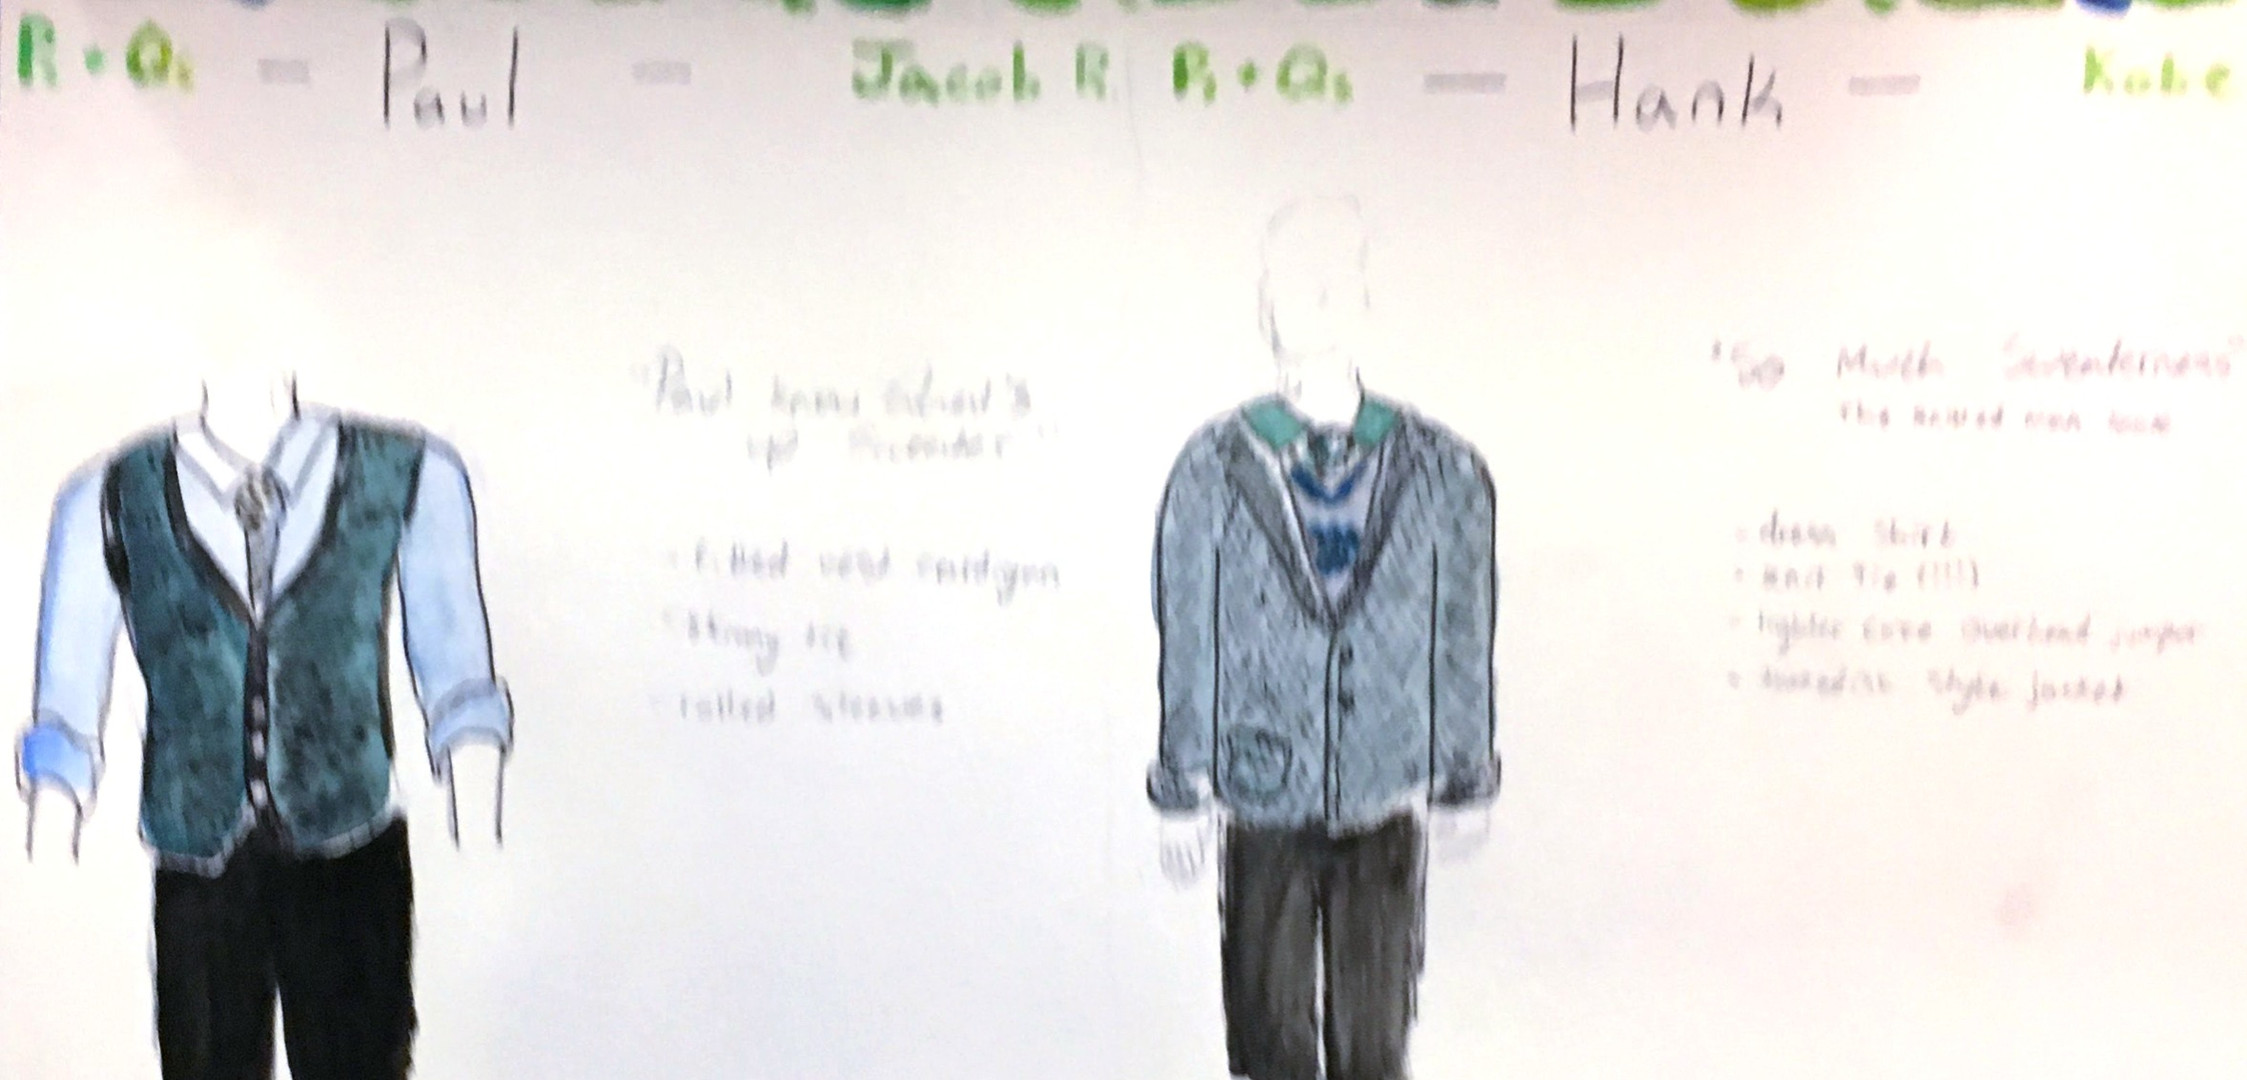 Sweater Series costume design, meeting notes/concepts